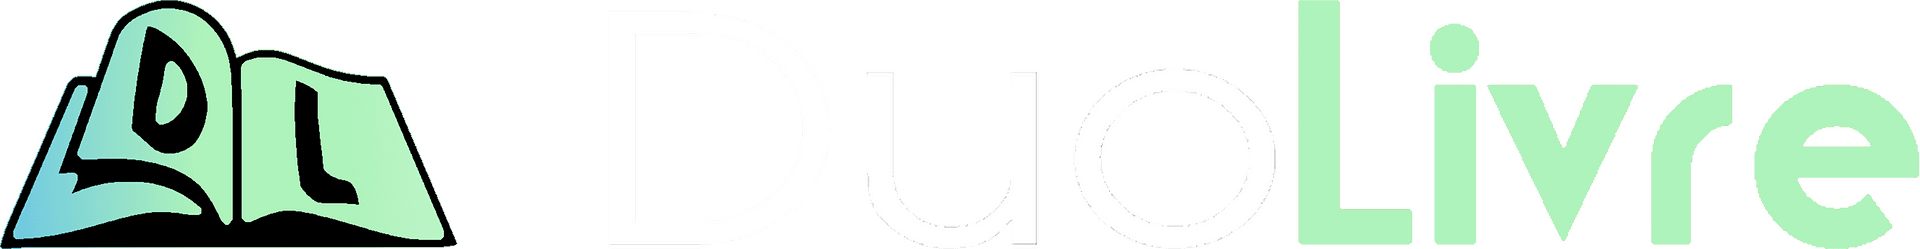 DuoLivre Logo (An open book with a 'D' on the left and an 'L' on the right followed by stylized text with the company name, 'DuoLivre'